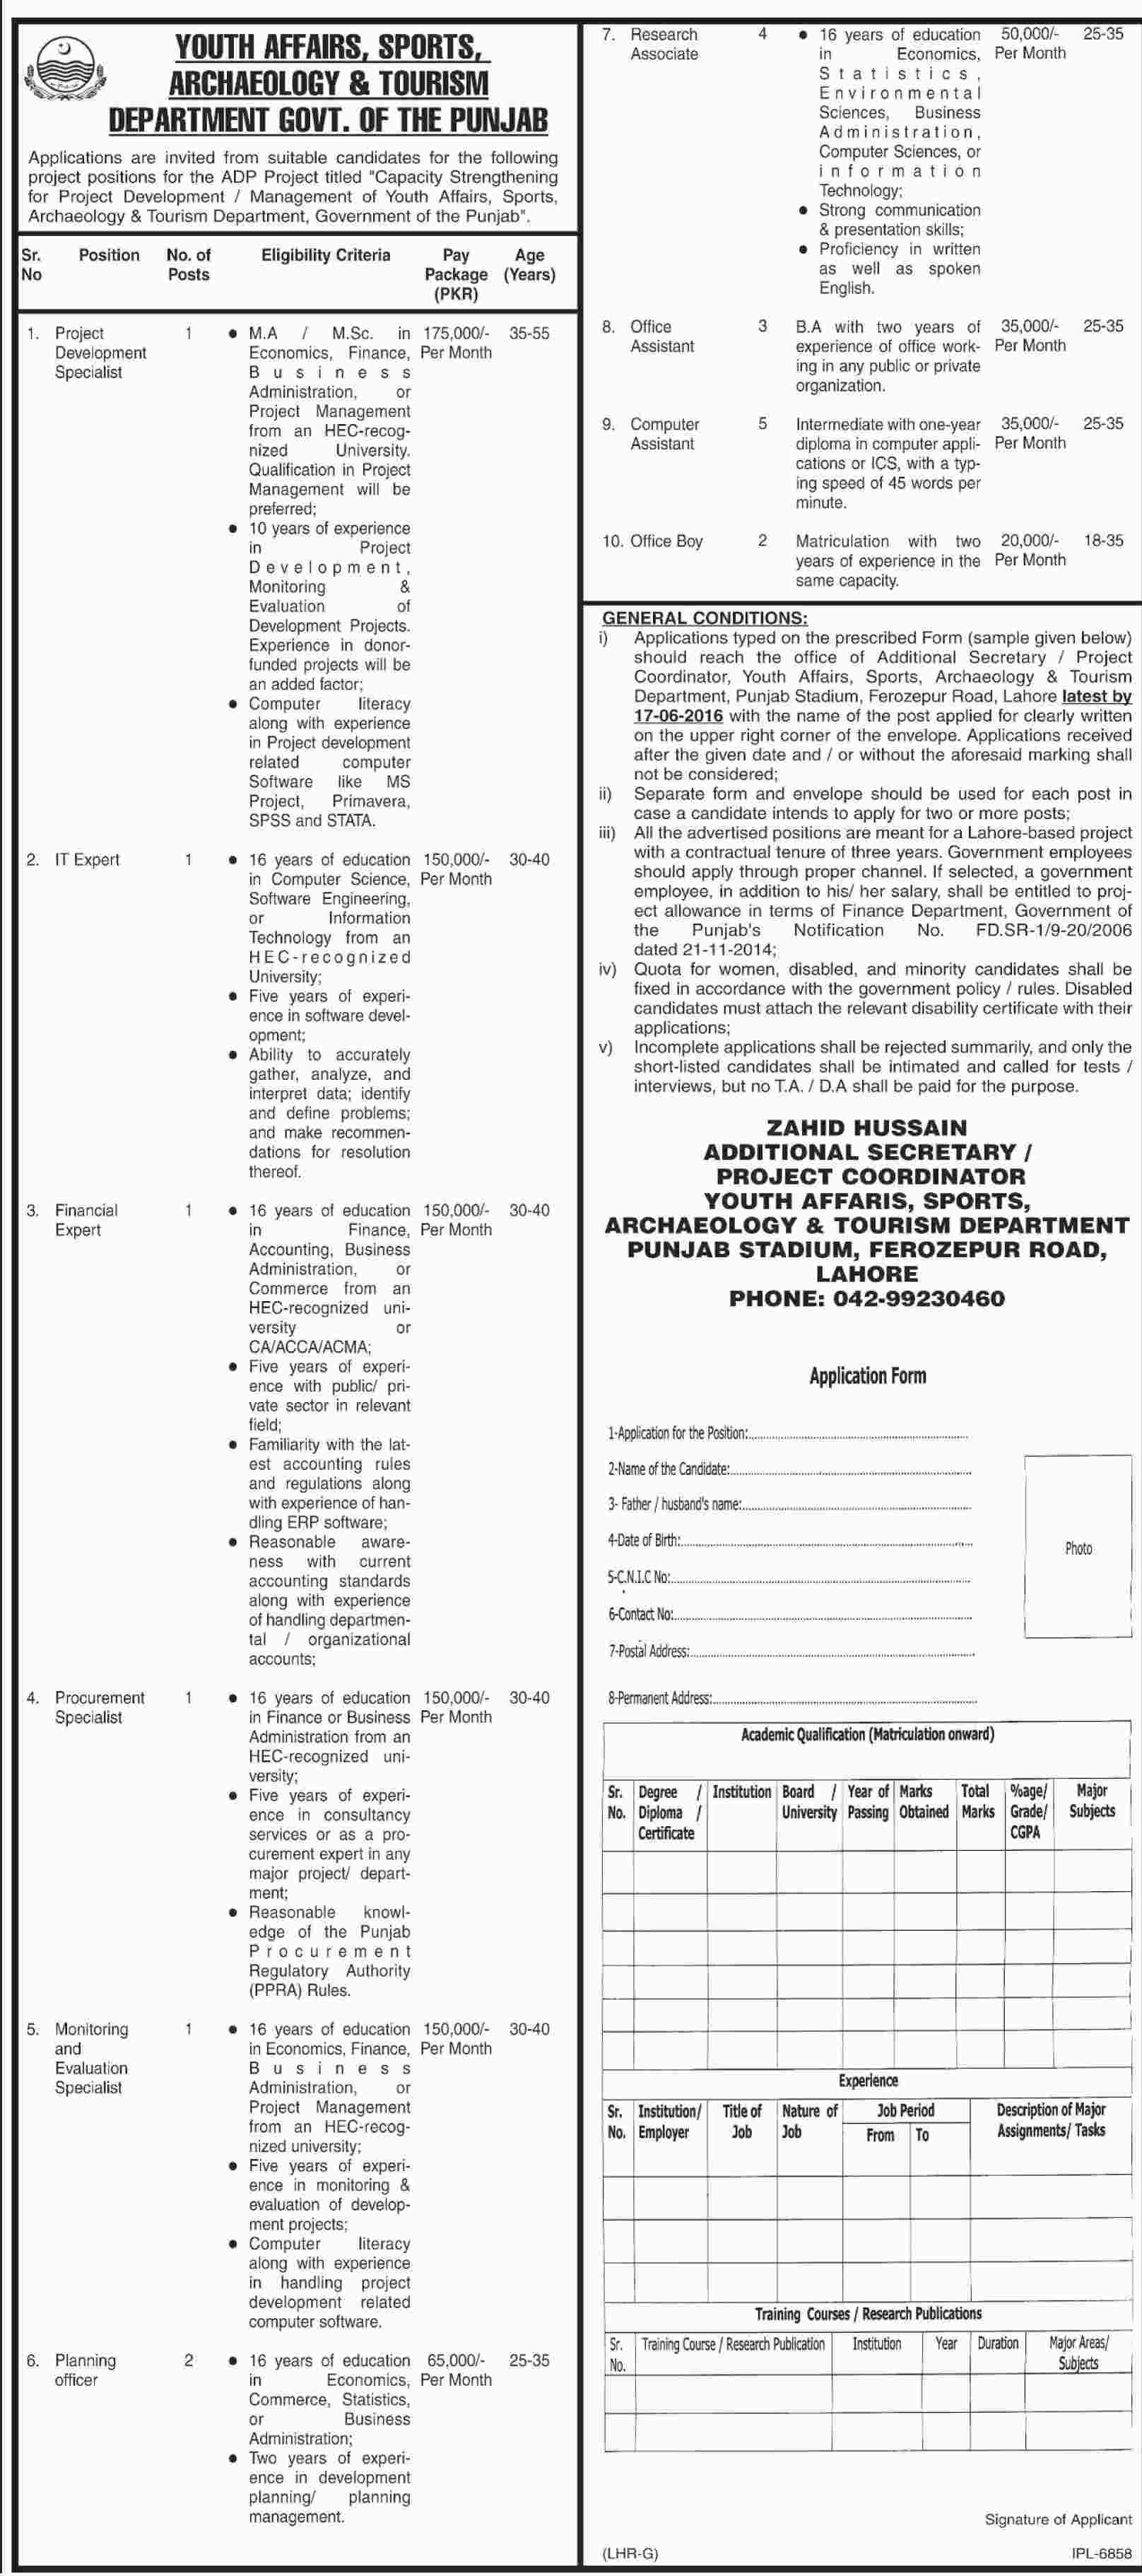 punjab govt jobs 21 vacancies in youth affairs sports youth affairs dawn 08 06 2016 179 004